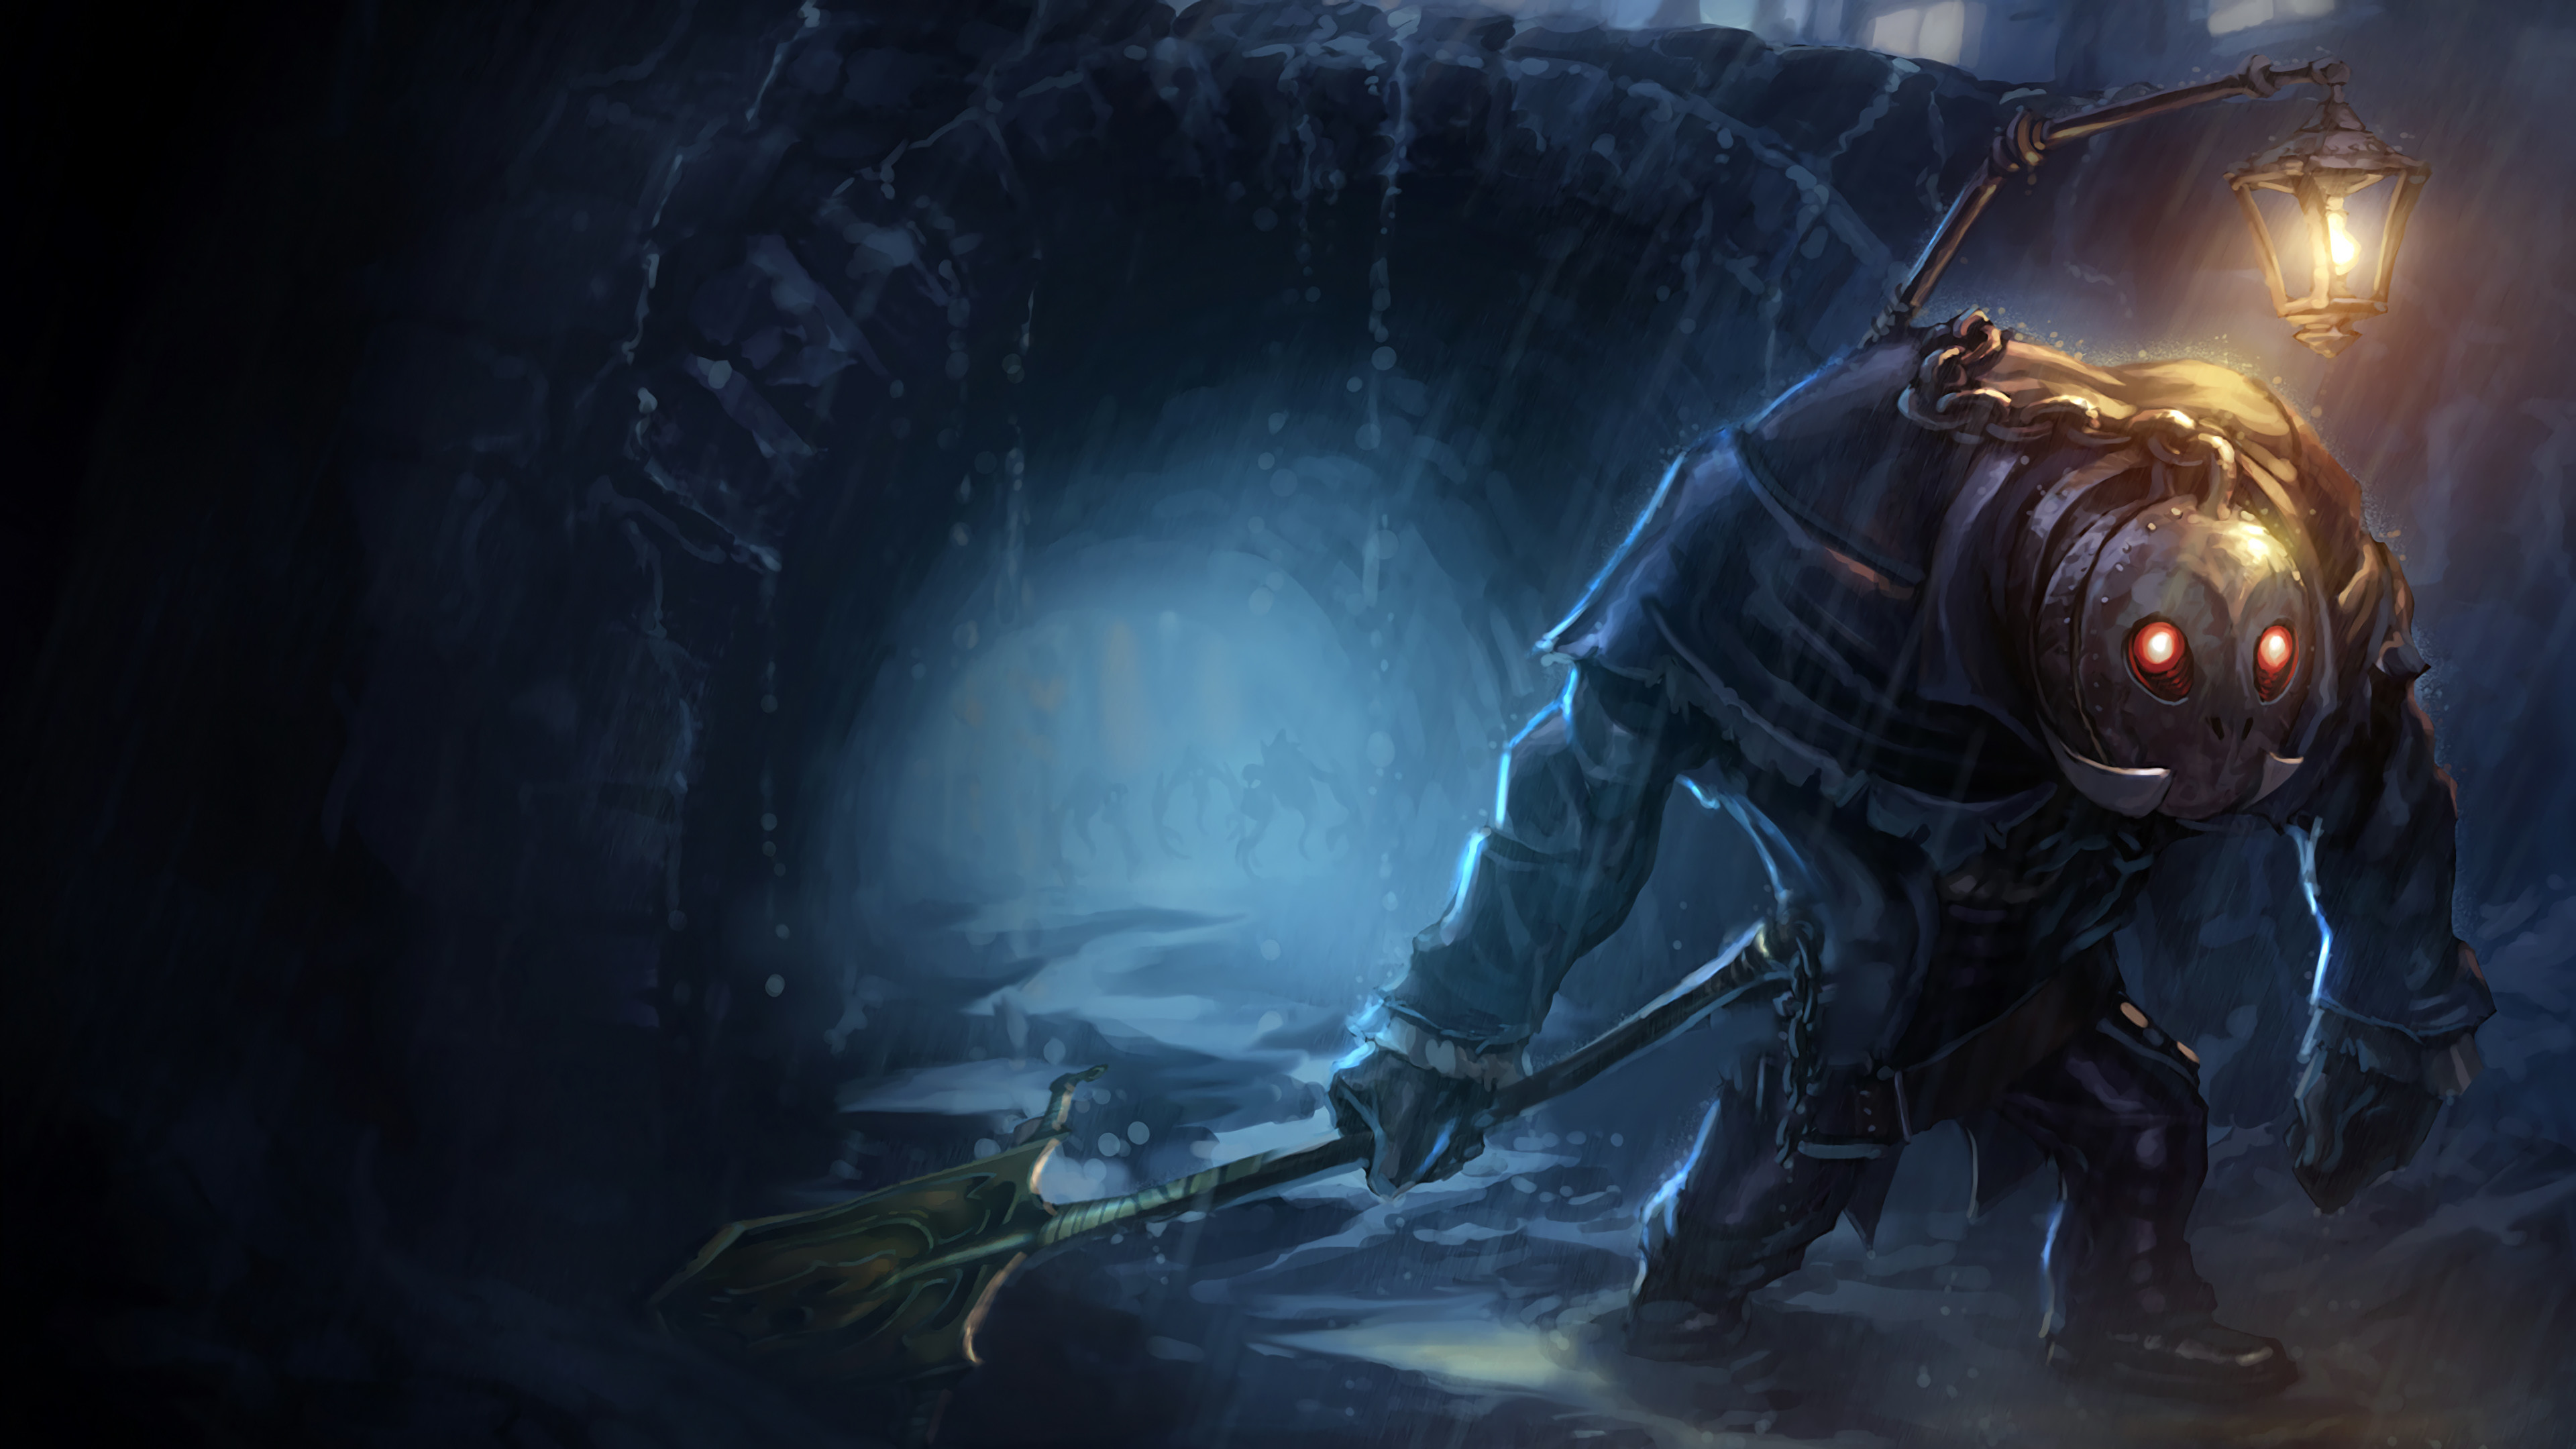 3840x2160 Undertaker Yorick Splash Art Old League of Legends Artwork Wallpaper lol